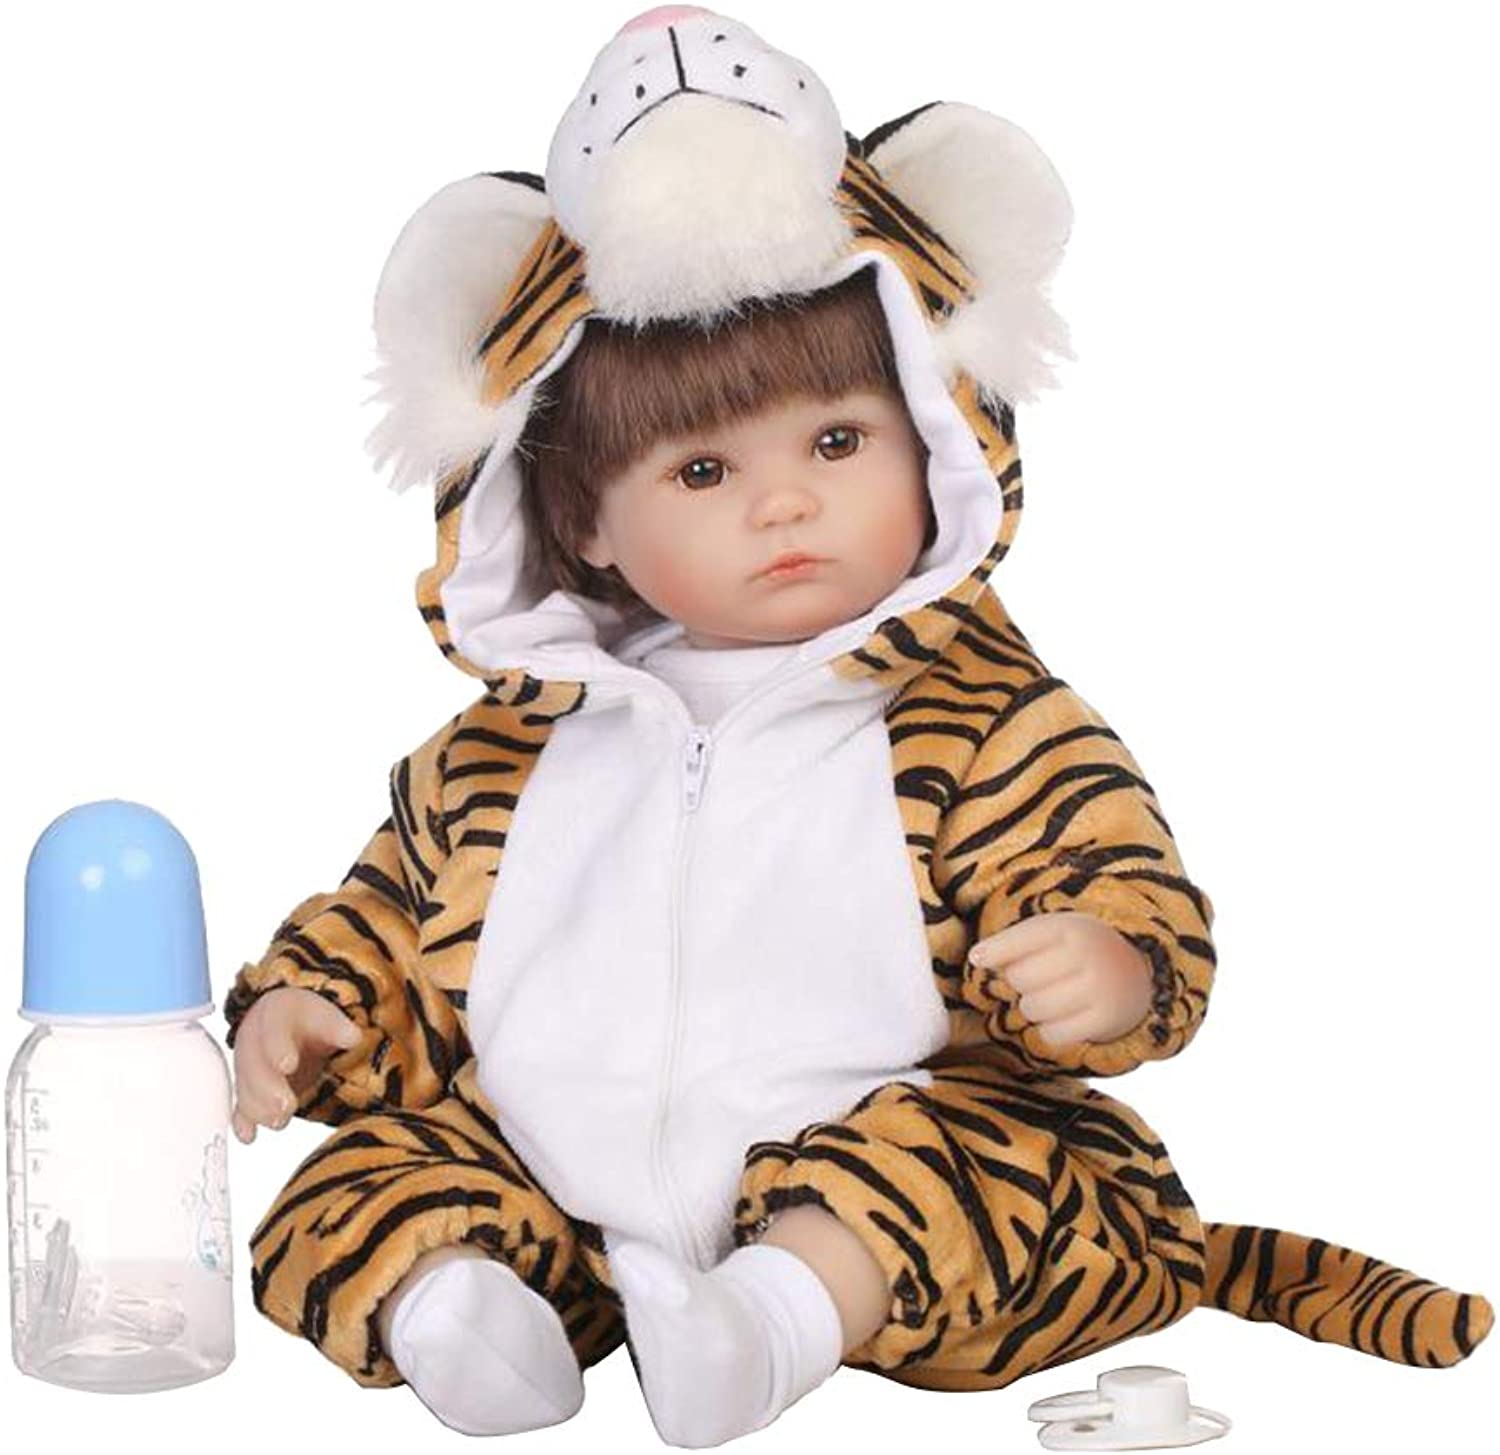 Kesoto 40cm Adorable Vinyl Reborn Awake Baby Doll Model in Tiger Jumpsuit Outfit Accessories